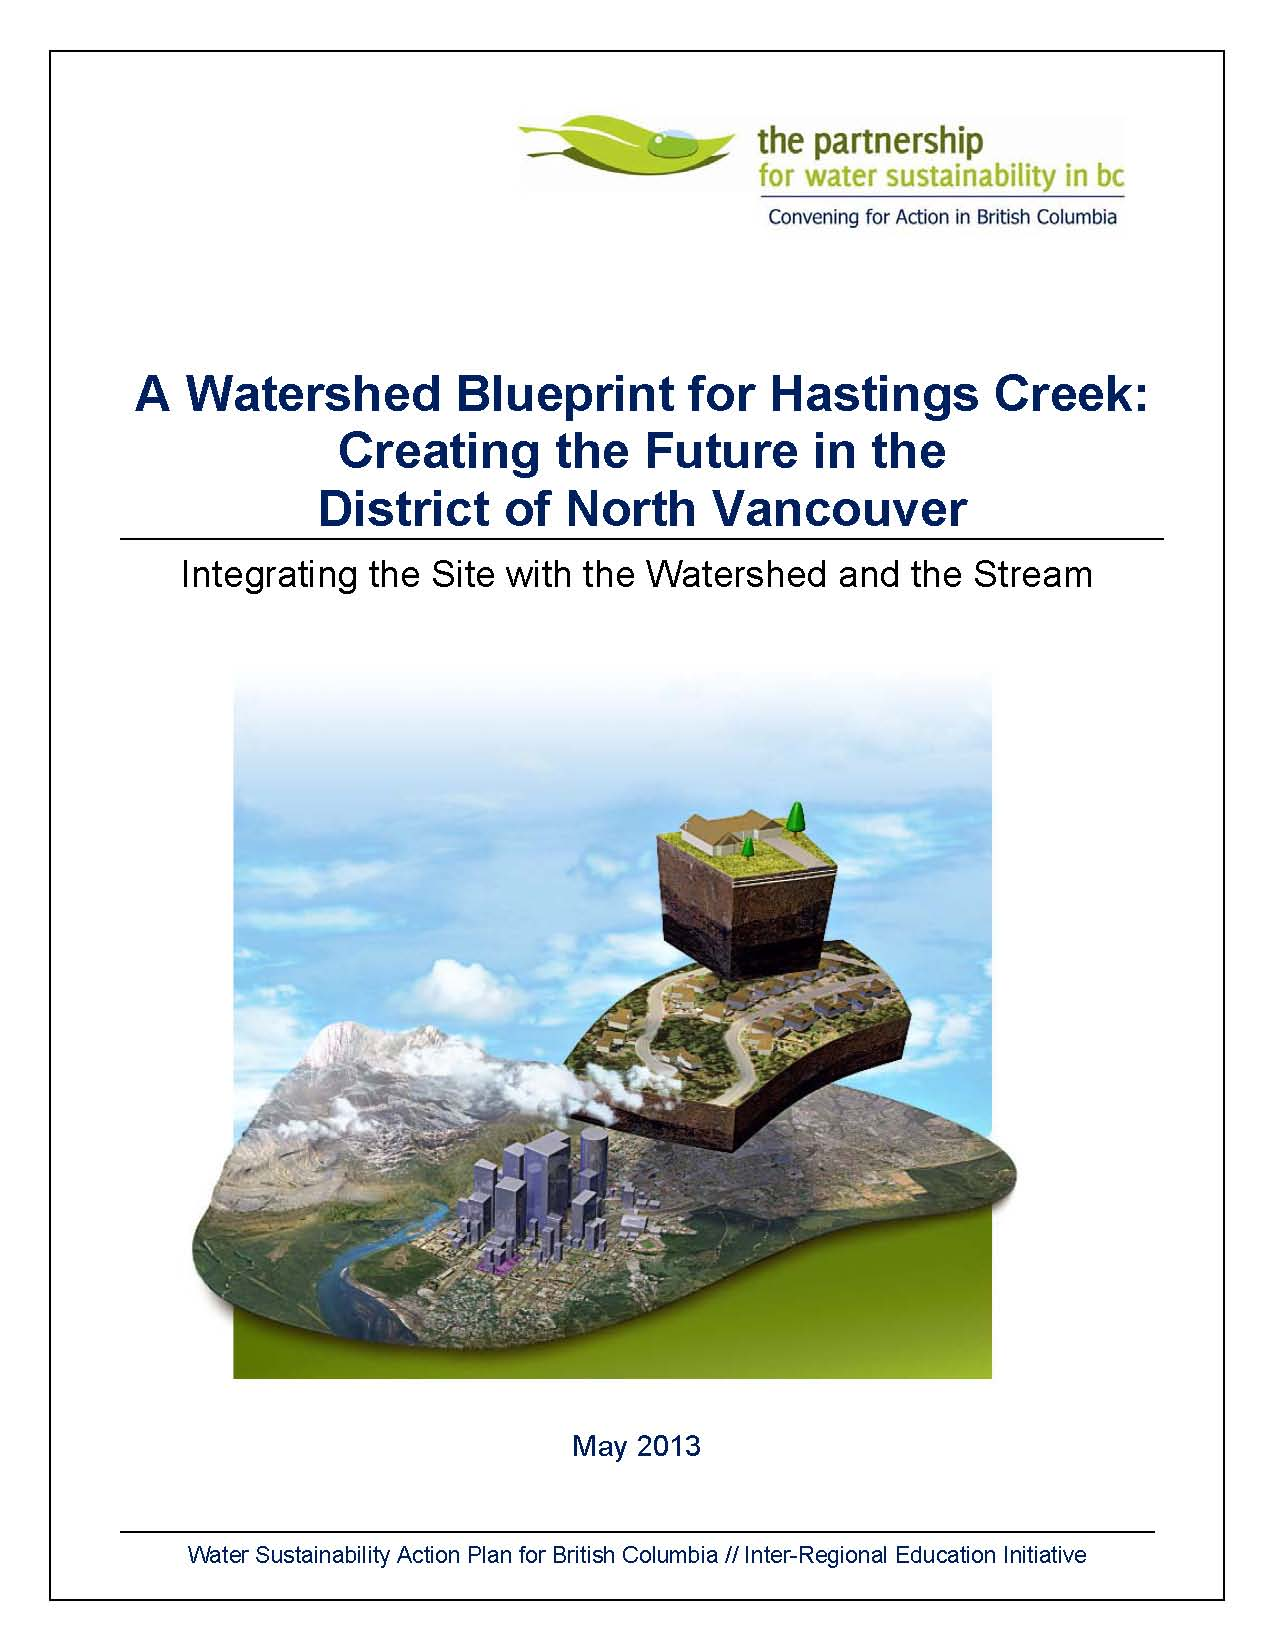 A watershed blueprint for hastings creek creating the future in the and water balance model express for landowners use of these tools can help all local governments go farther more efficiently and effectively malvernweather Image collections